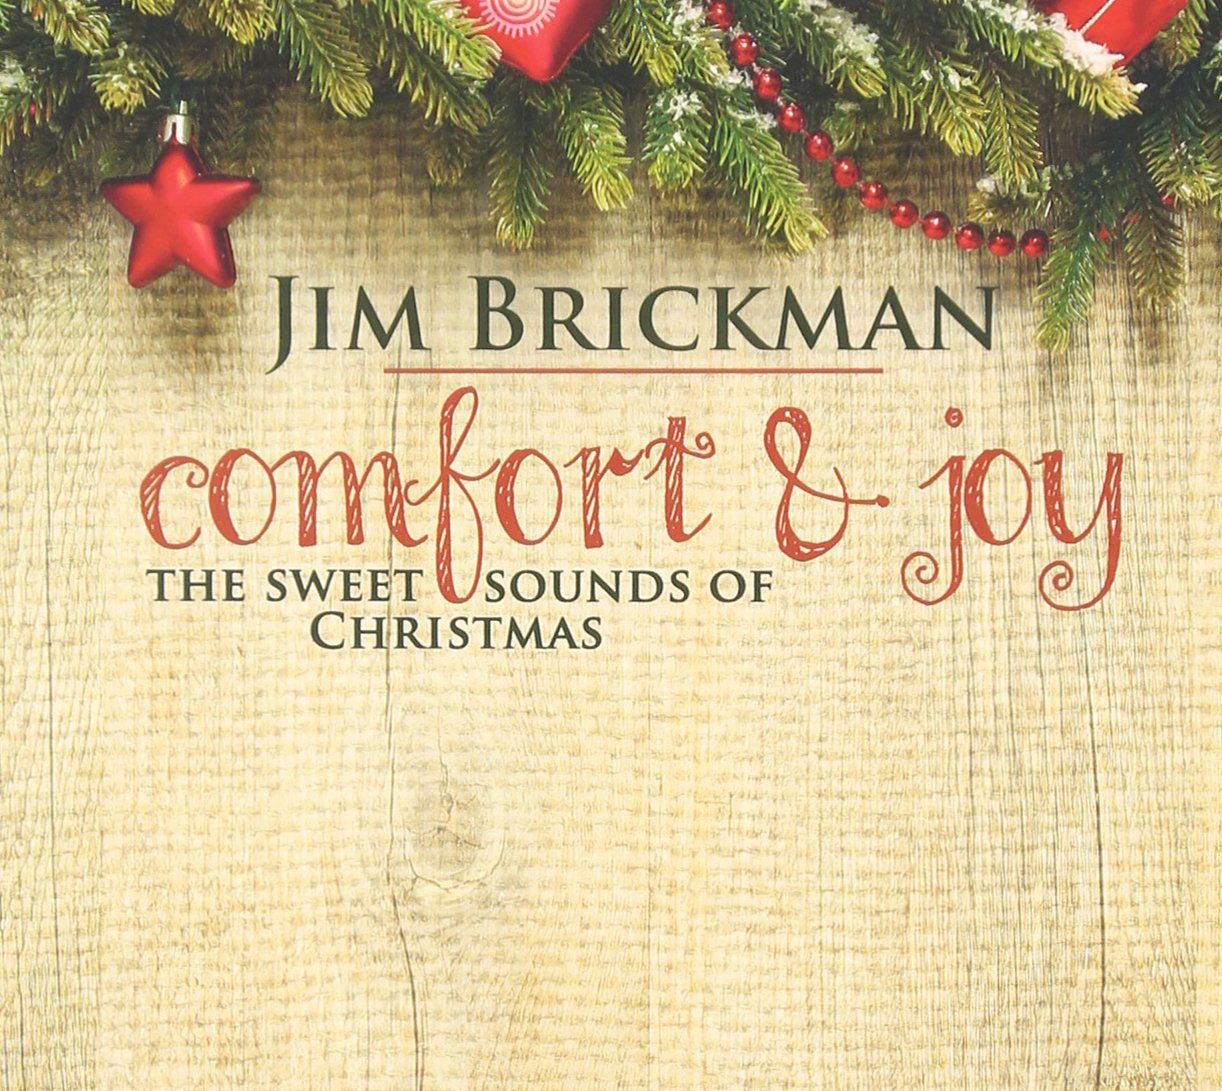 jim brickman - jim brickman comfort & joy - Amazon.com Music